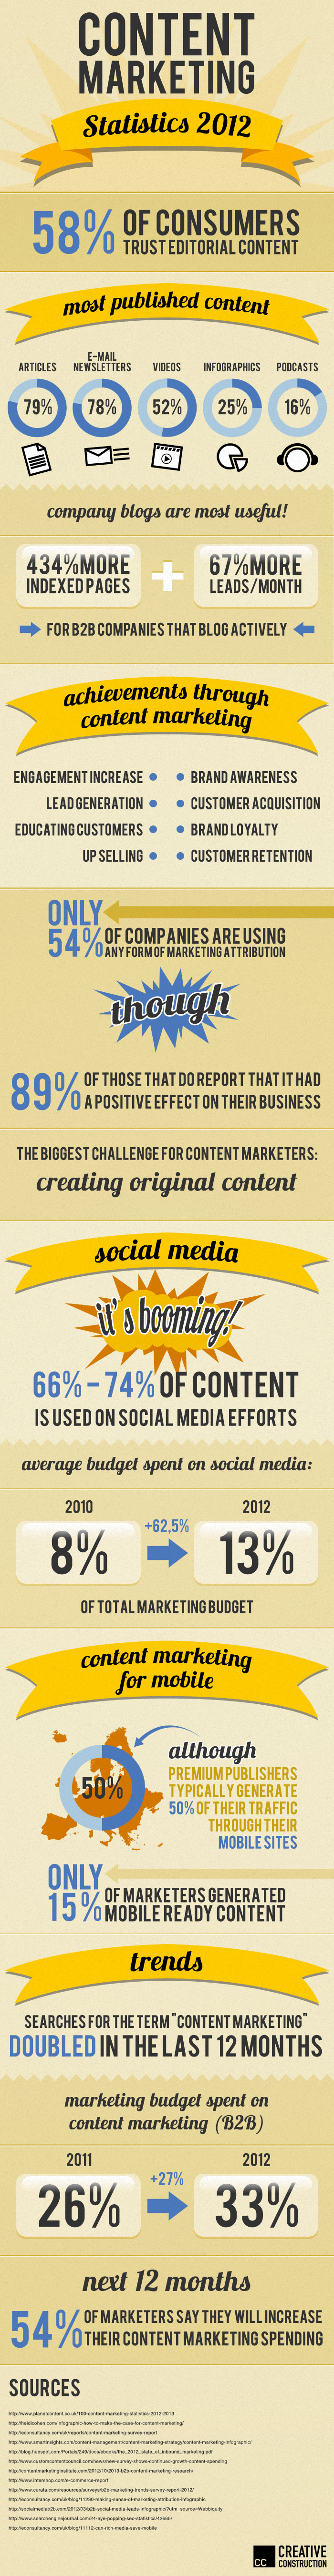 Infografik: Content-Marketing-Statistiken 2012